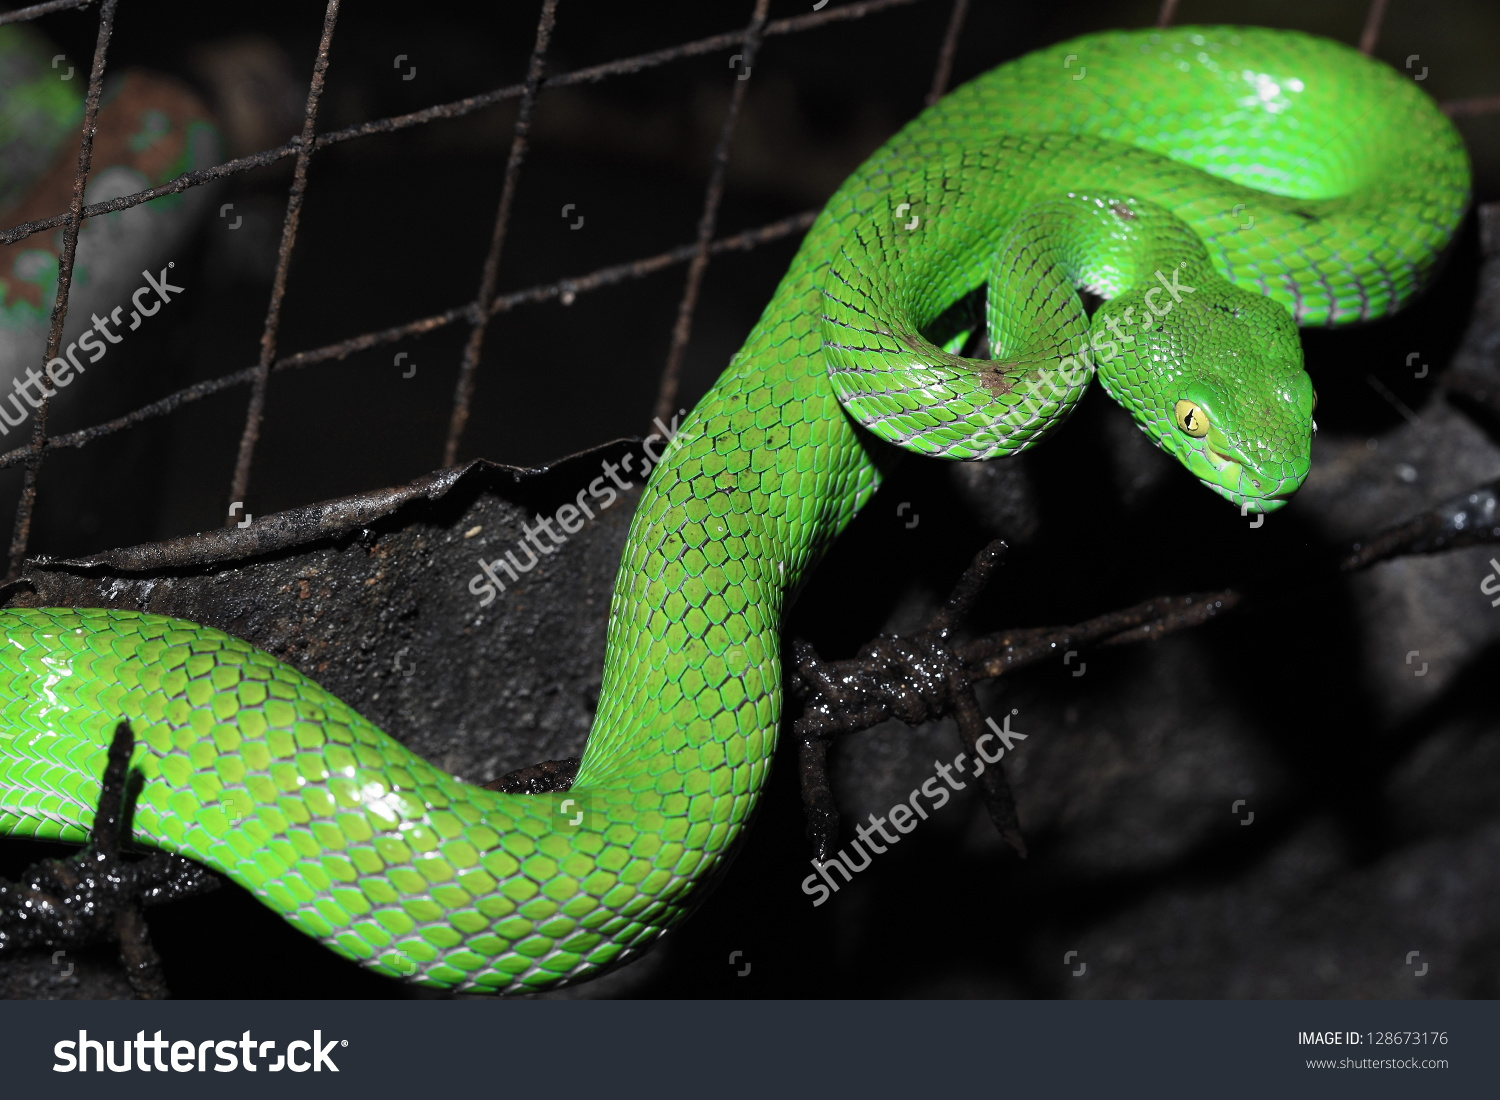 Green Pit Viper clipart #5, Download drawings